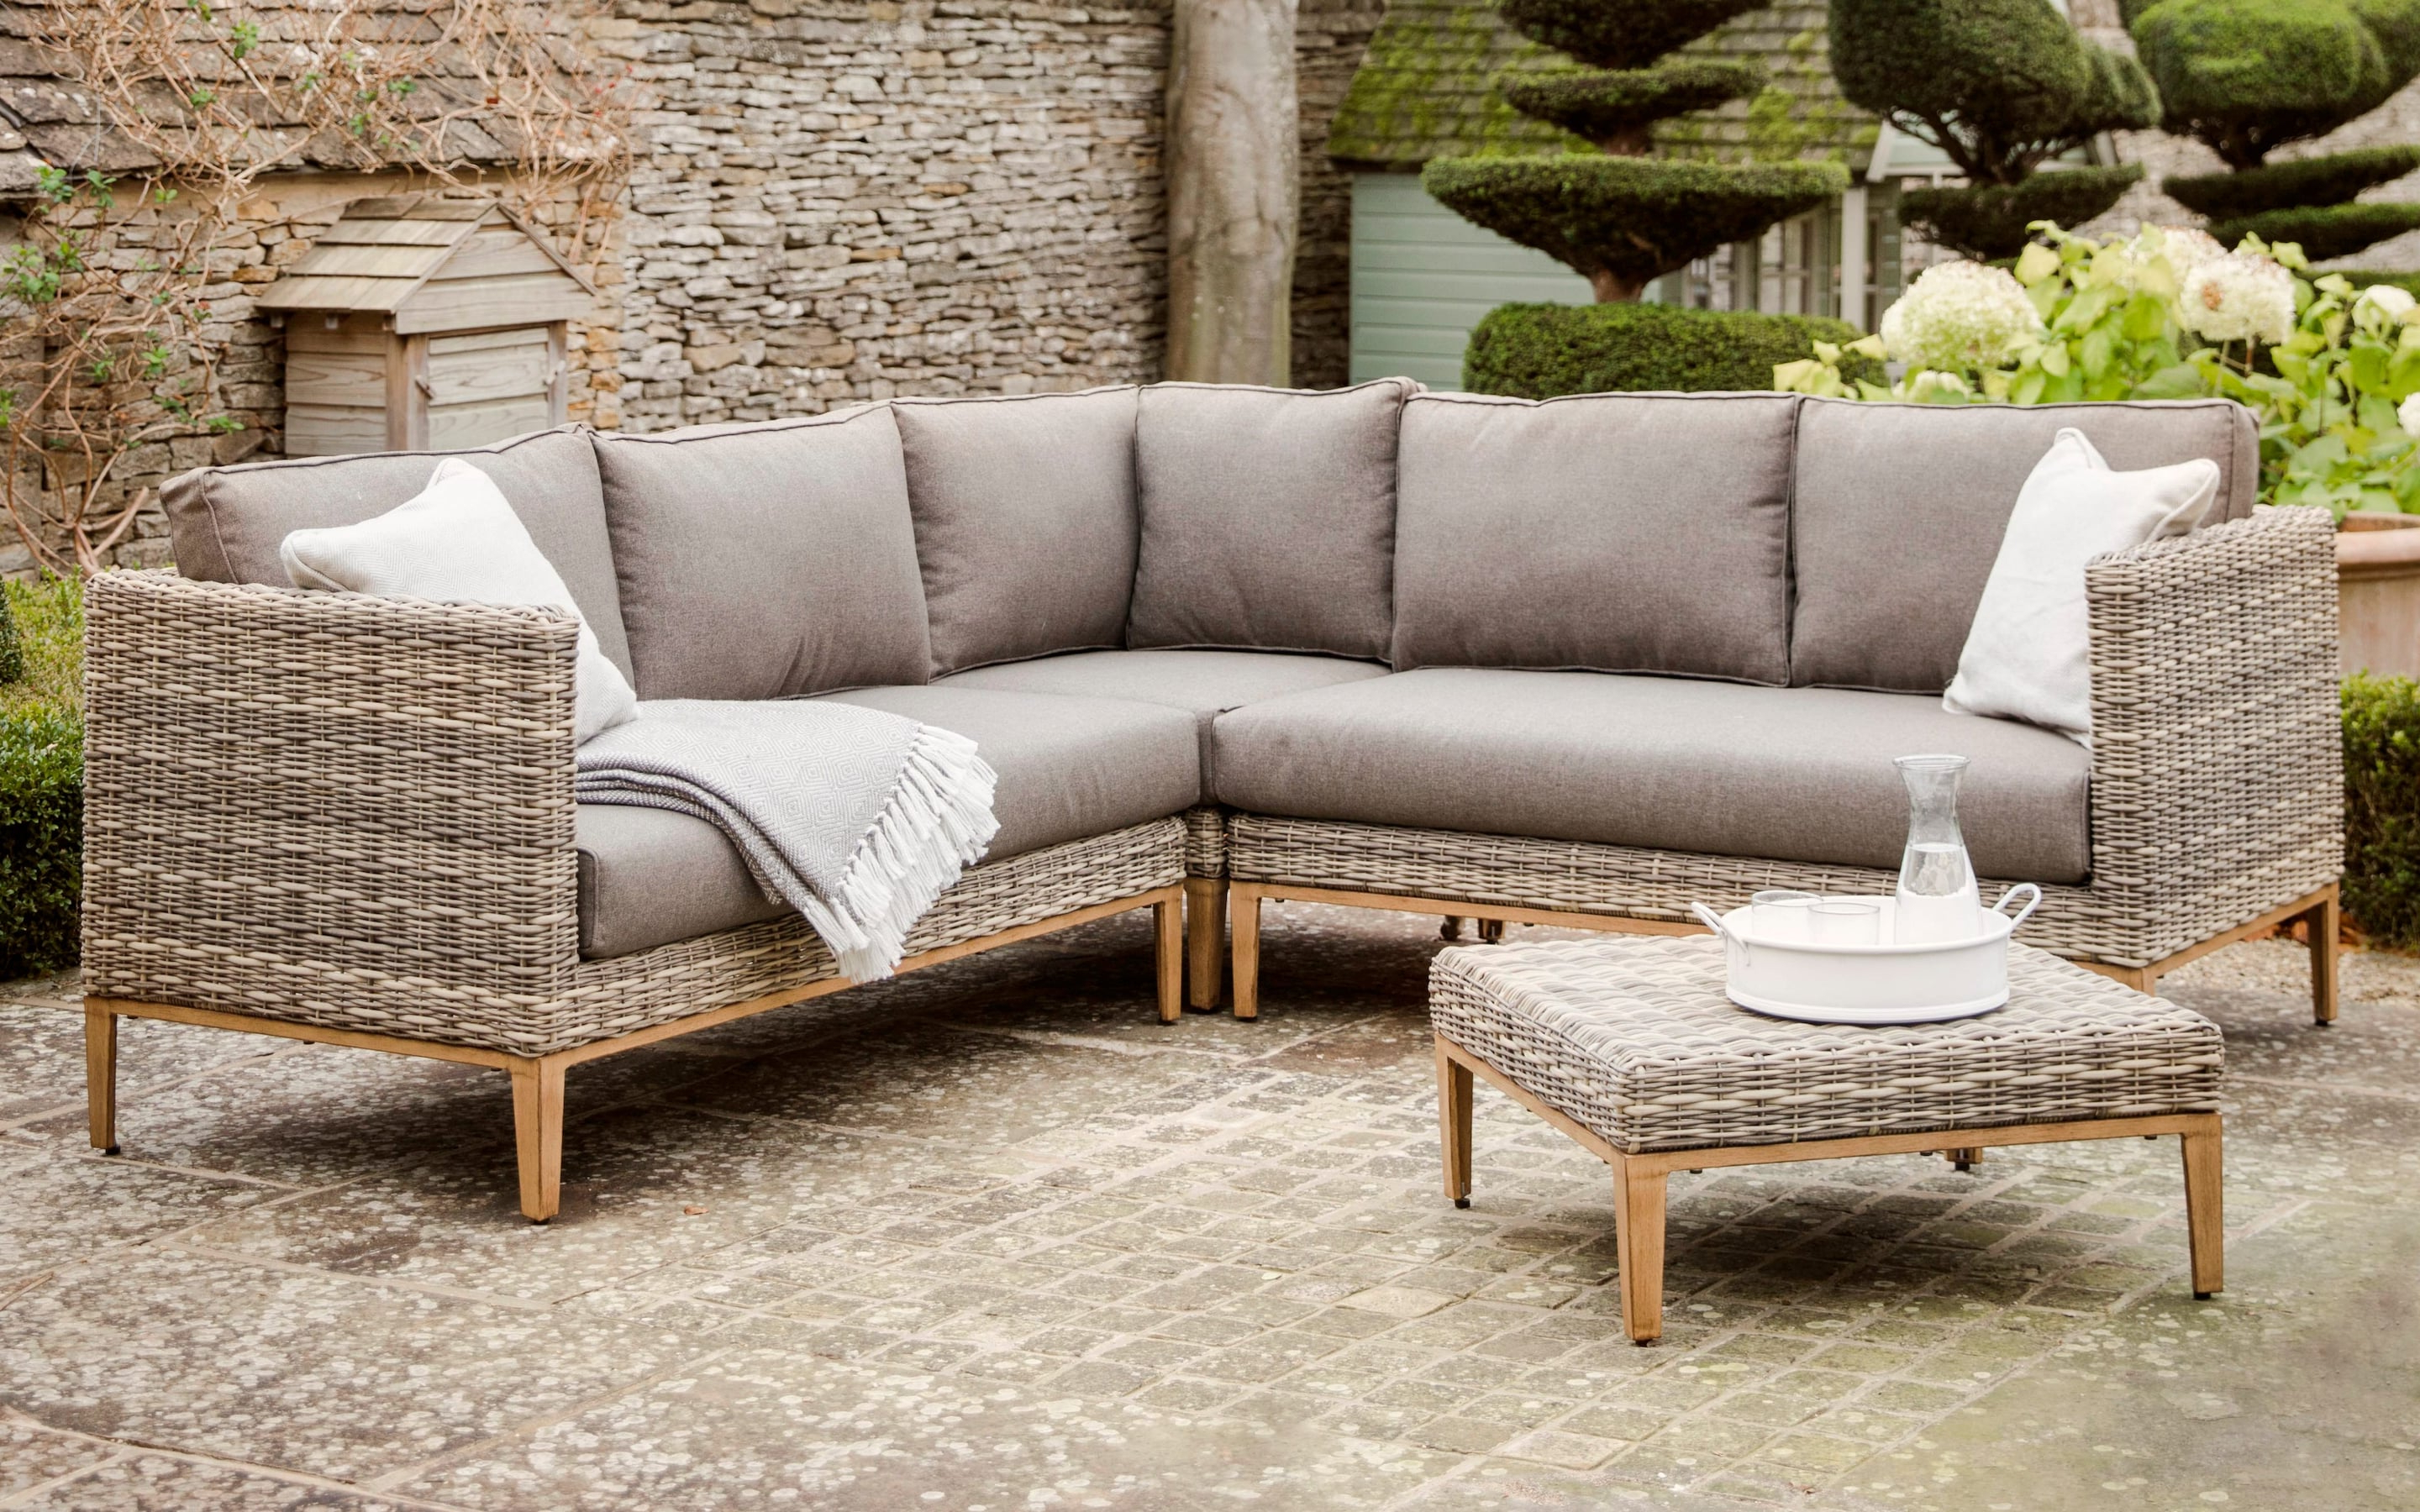 Recent Best Rattan Garden Furniture – And Where To Buy It (View 10 of 20)